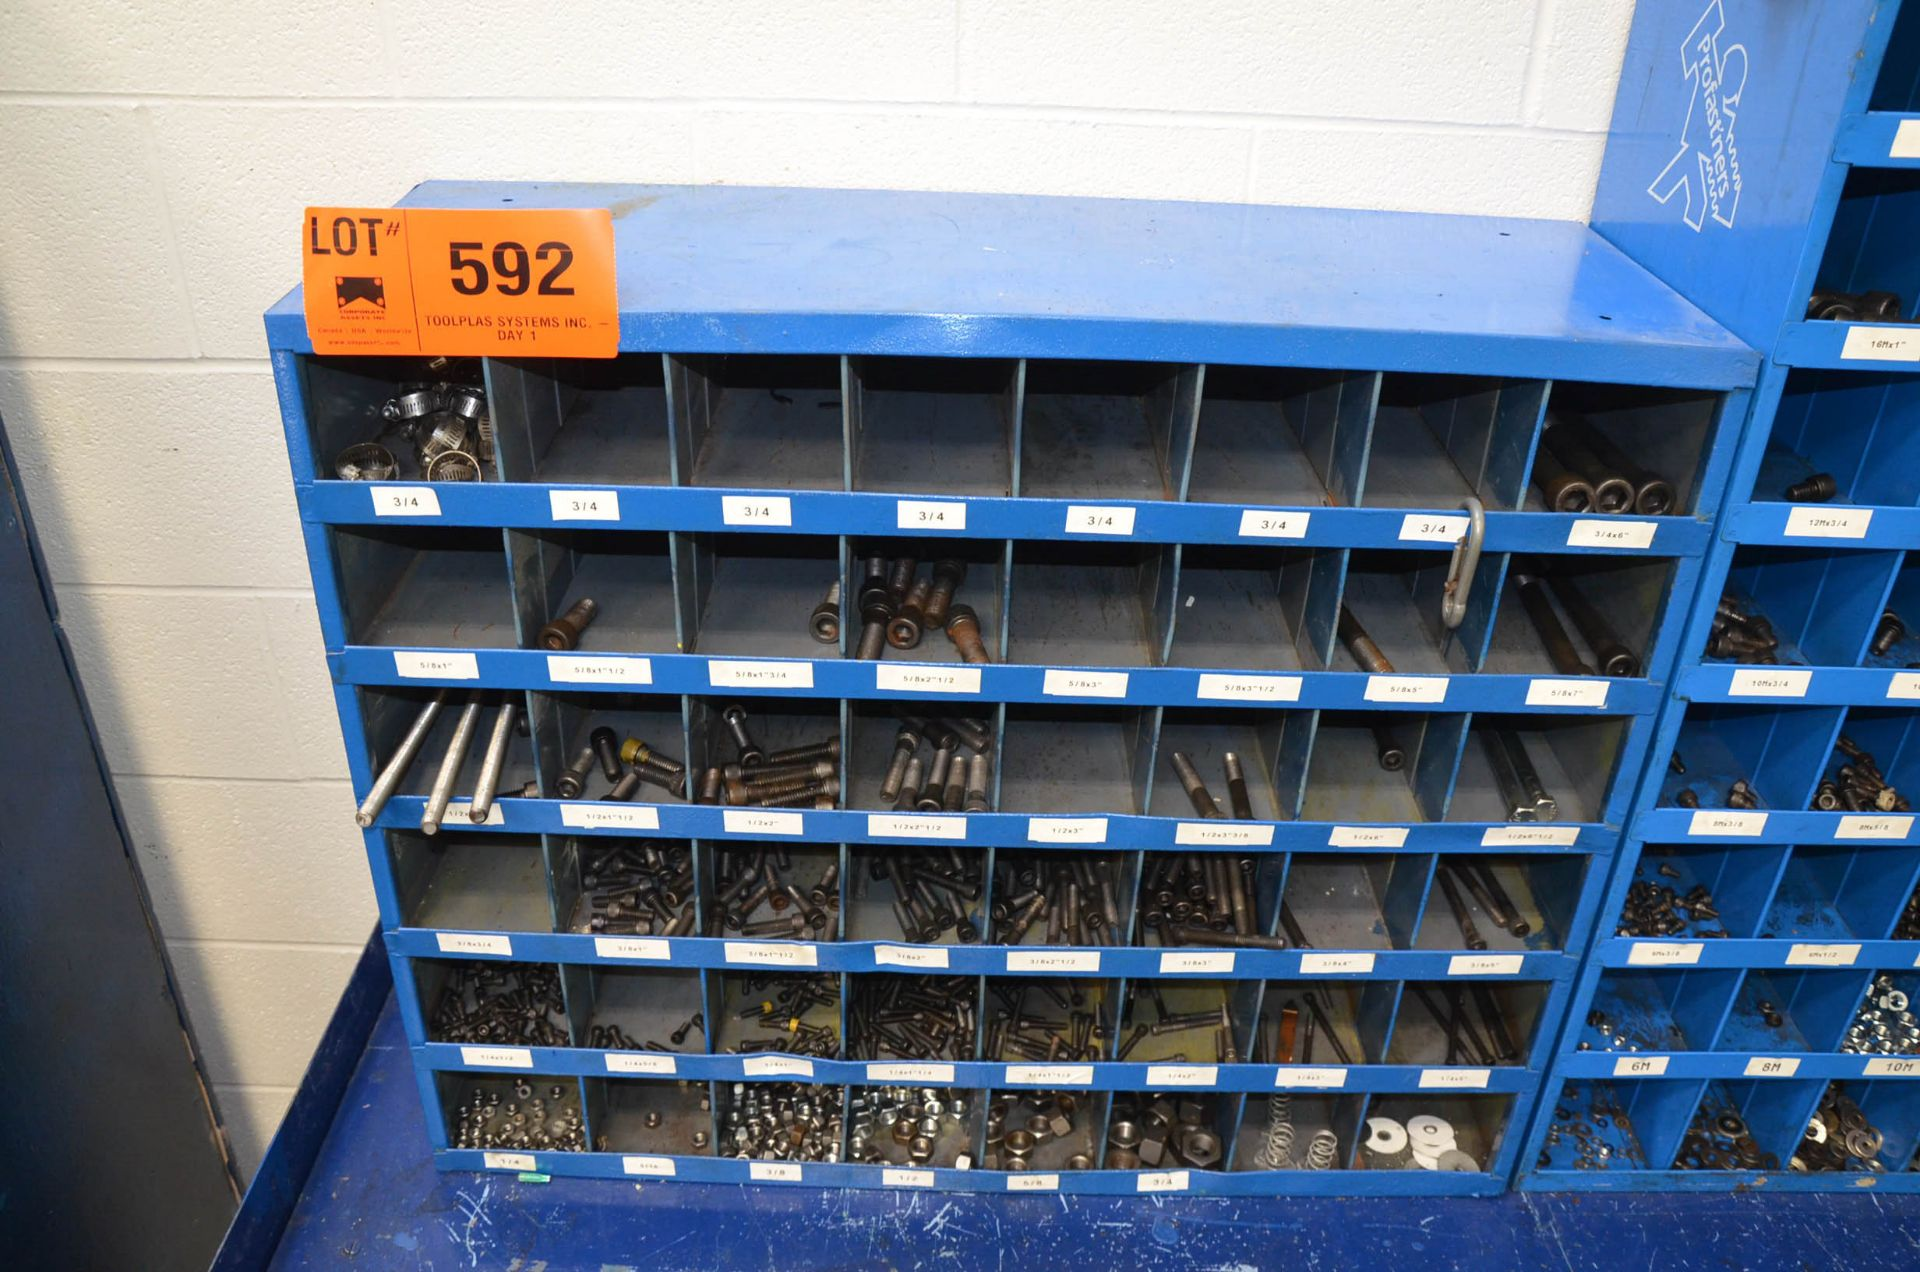 LOT/ FASTENAL PIGEON HOLE INDEX CABINETS WITH FASTENING HARDWARE AND STEEL WORK BENCH - Image 2 of 4